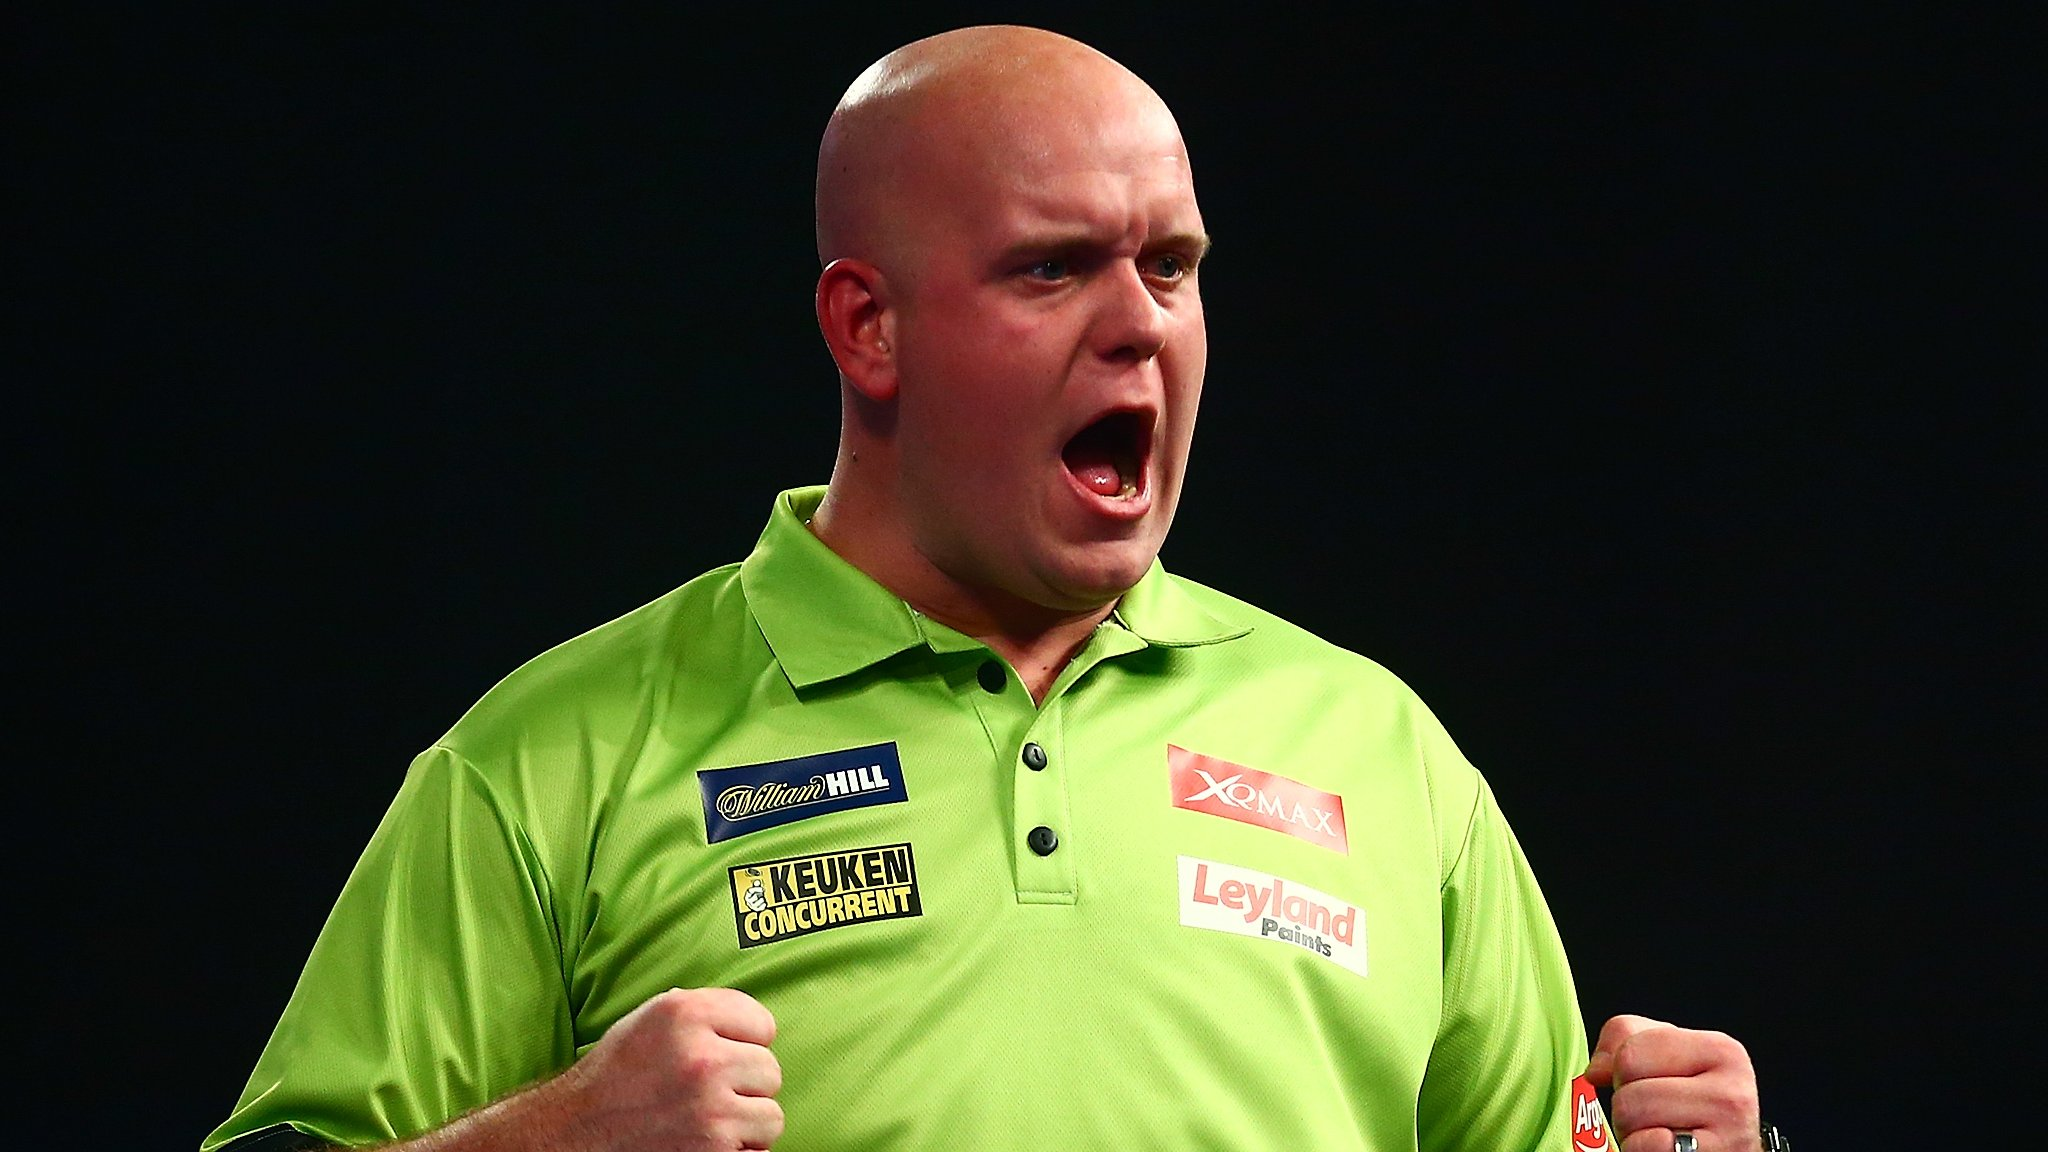 Champions League of Darts: Michael van Gerwen sets up Gary Anderson semi-final